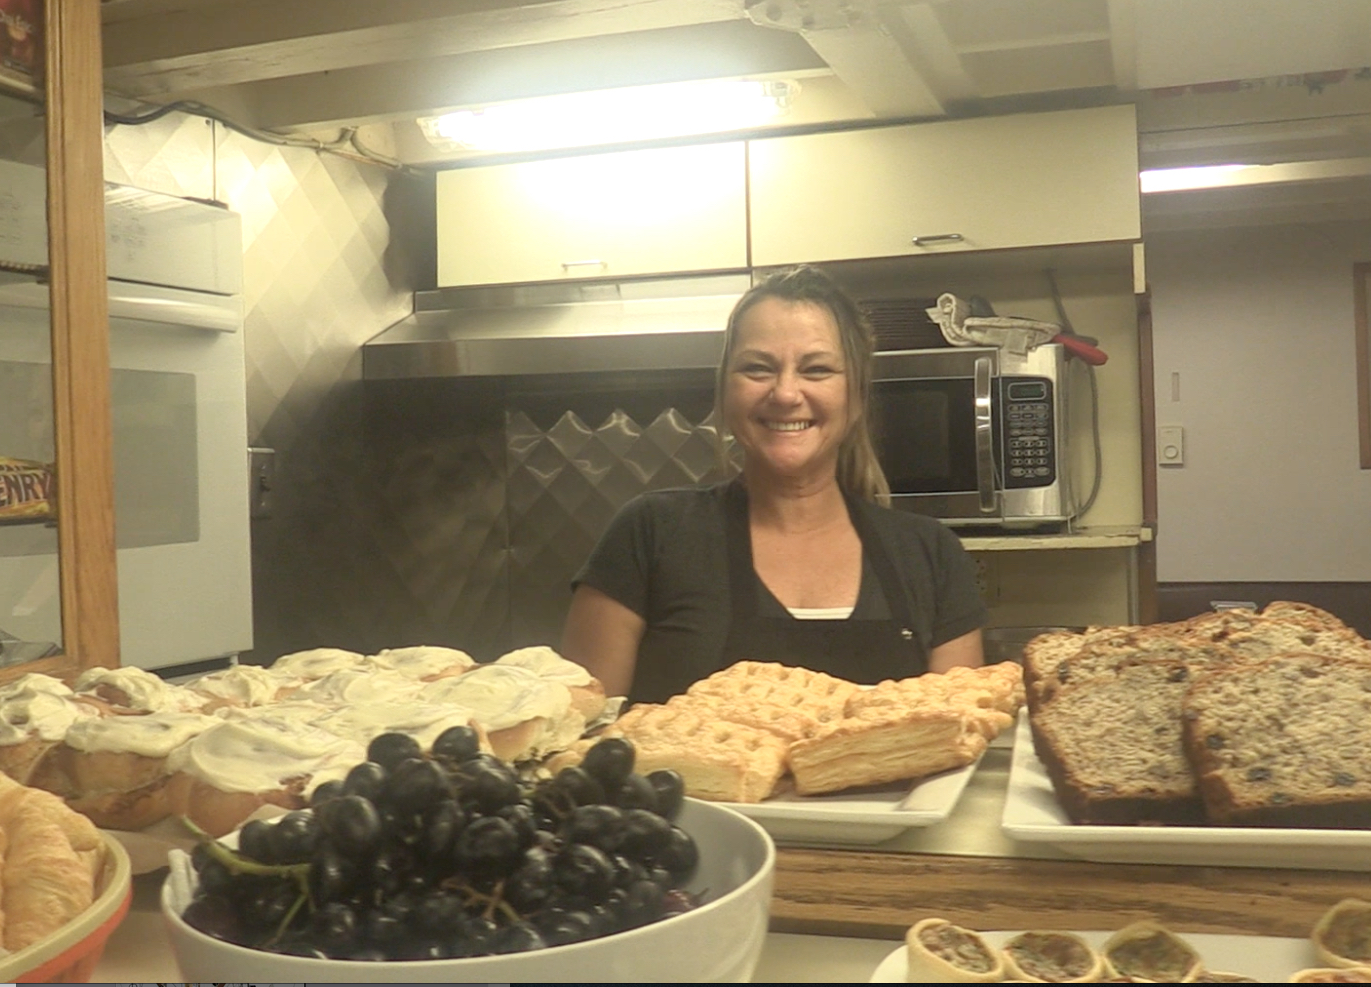 Elaine in the galley